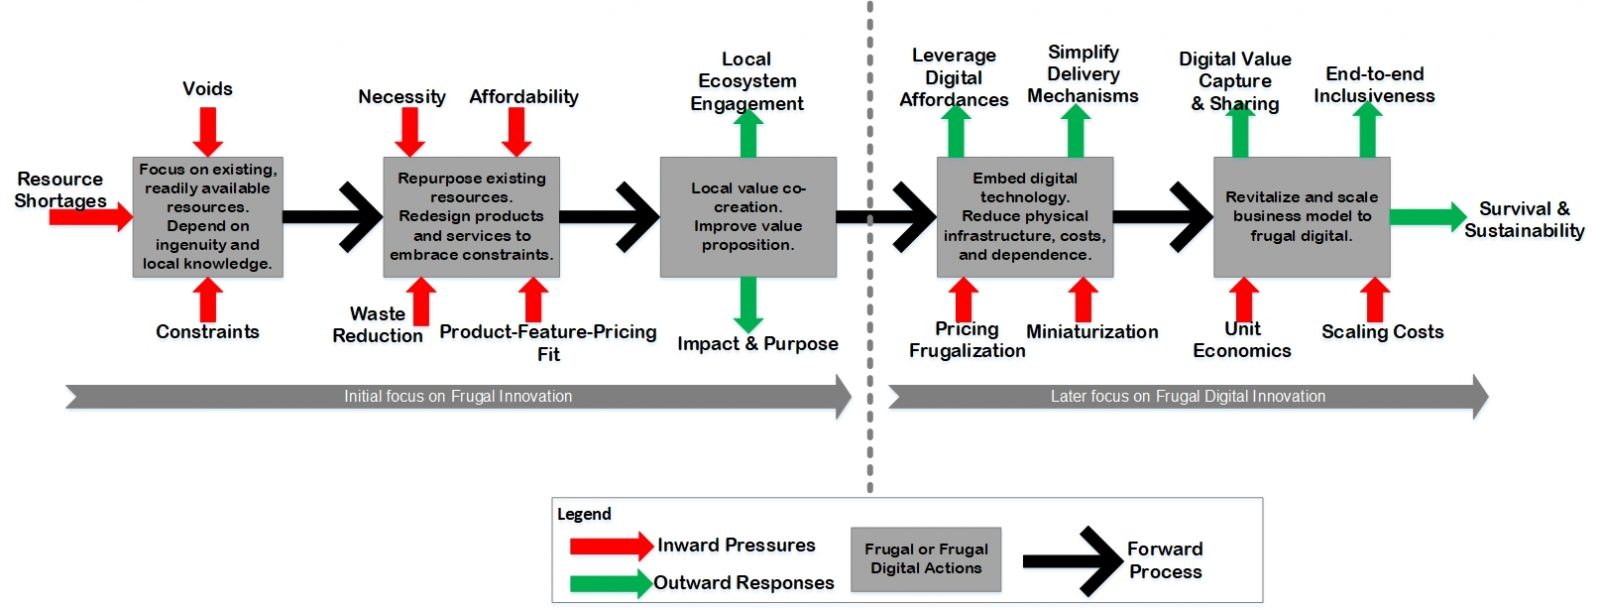 The Frugal Innovation process